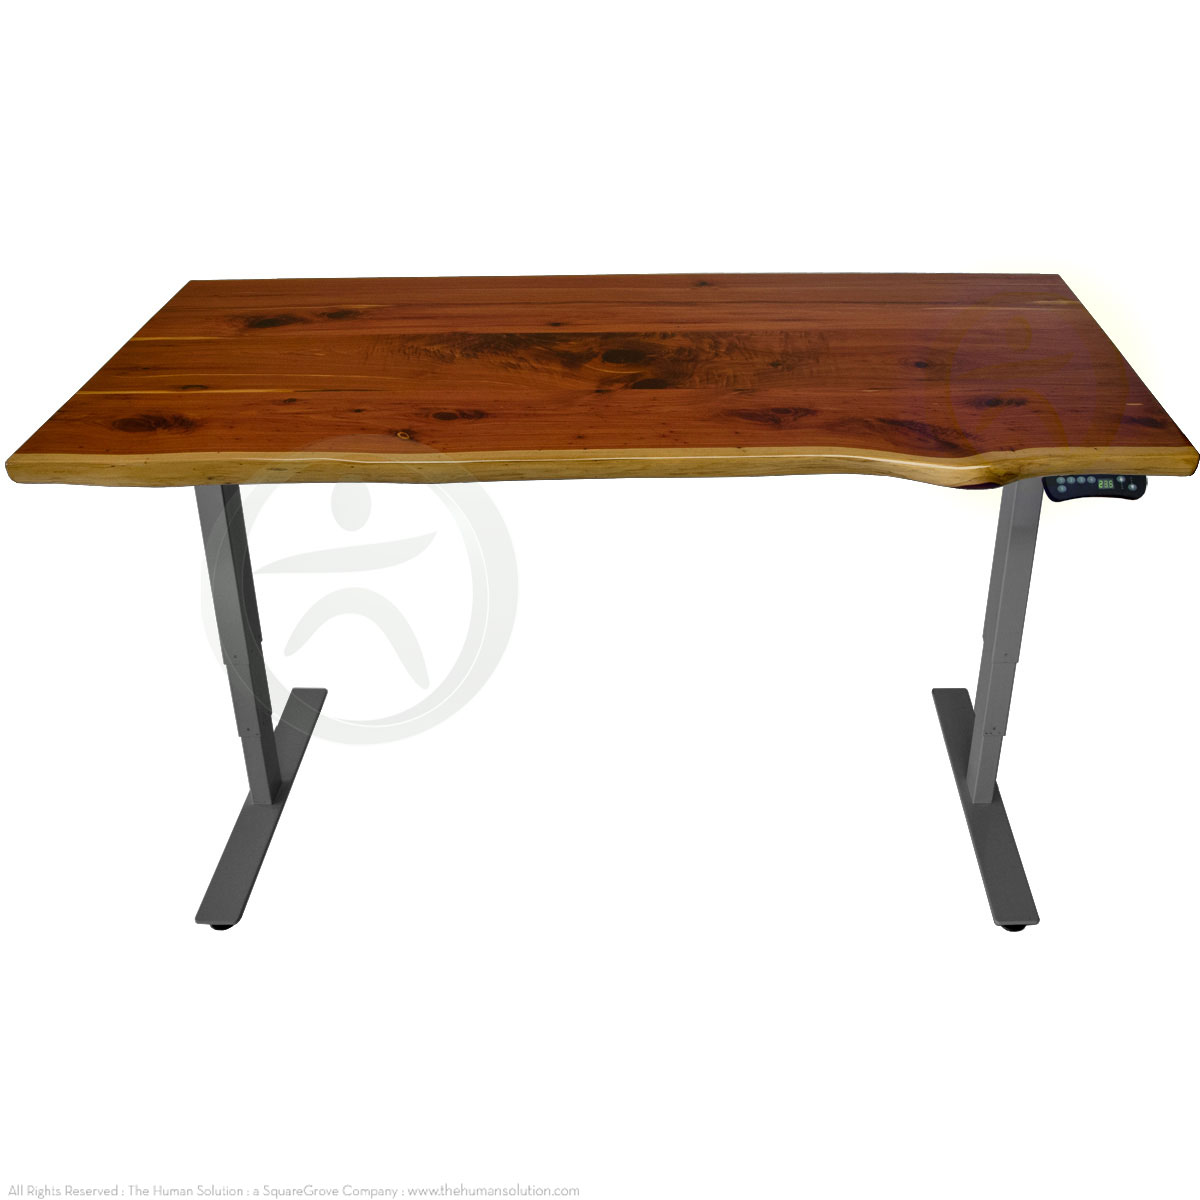 Shop Uplift 920 Solid Wood Sit Stand No Crossbar Desks